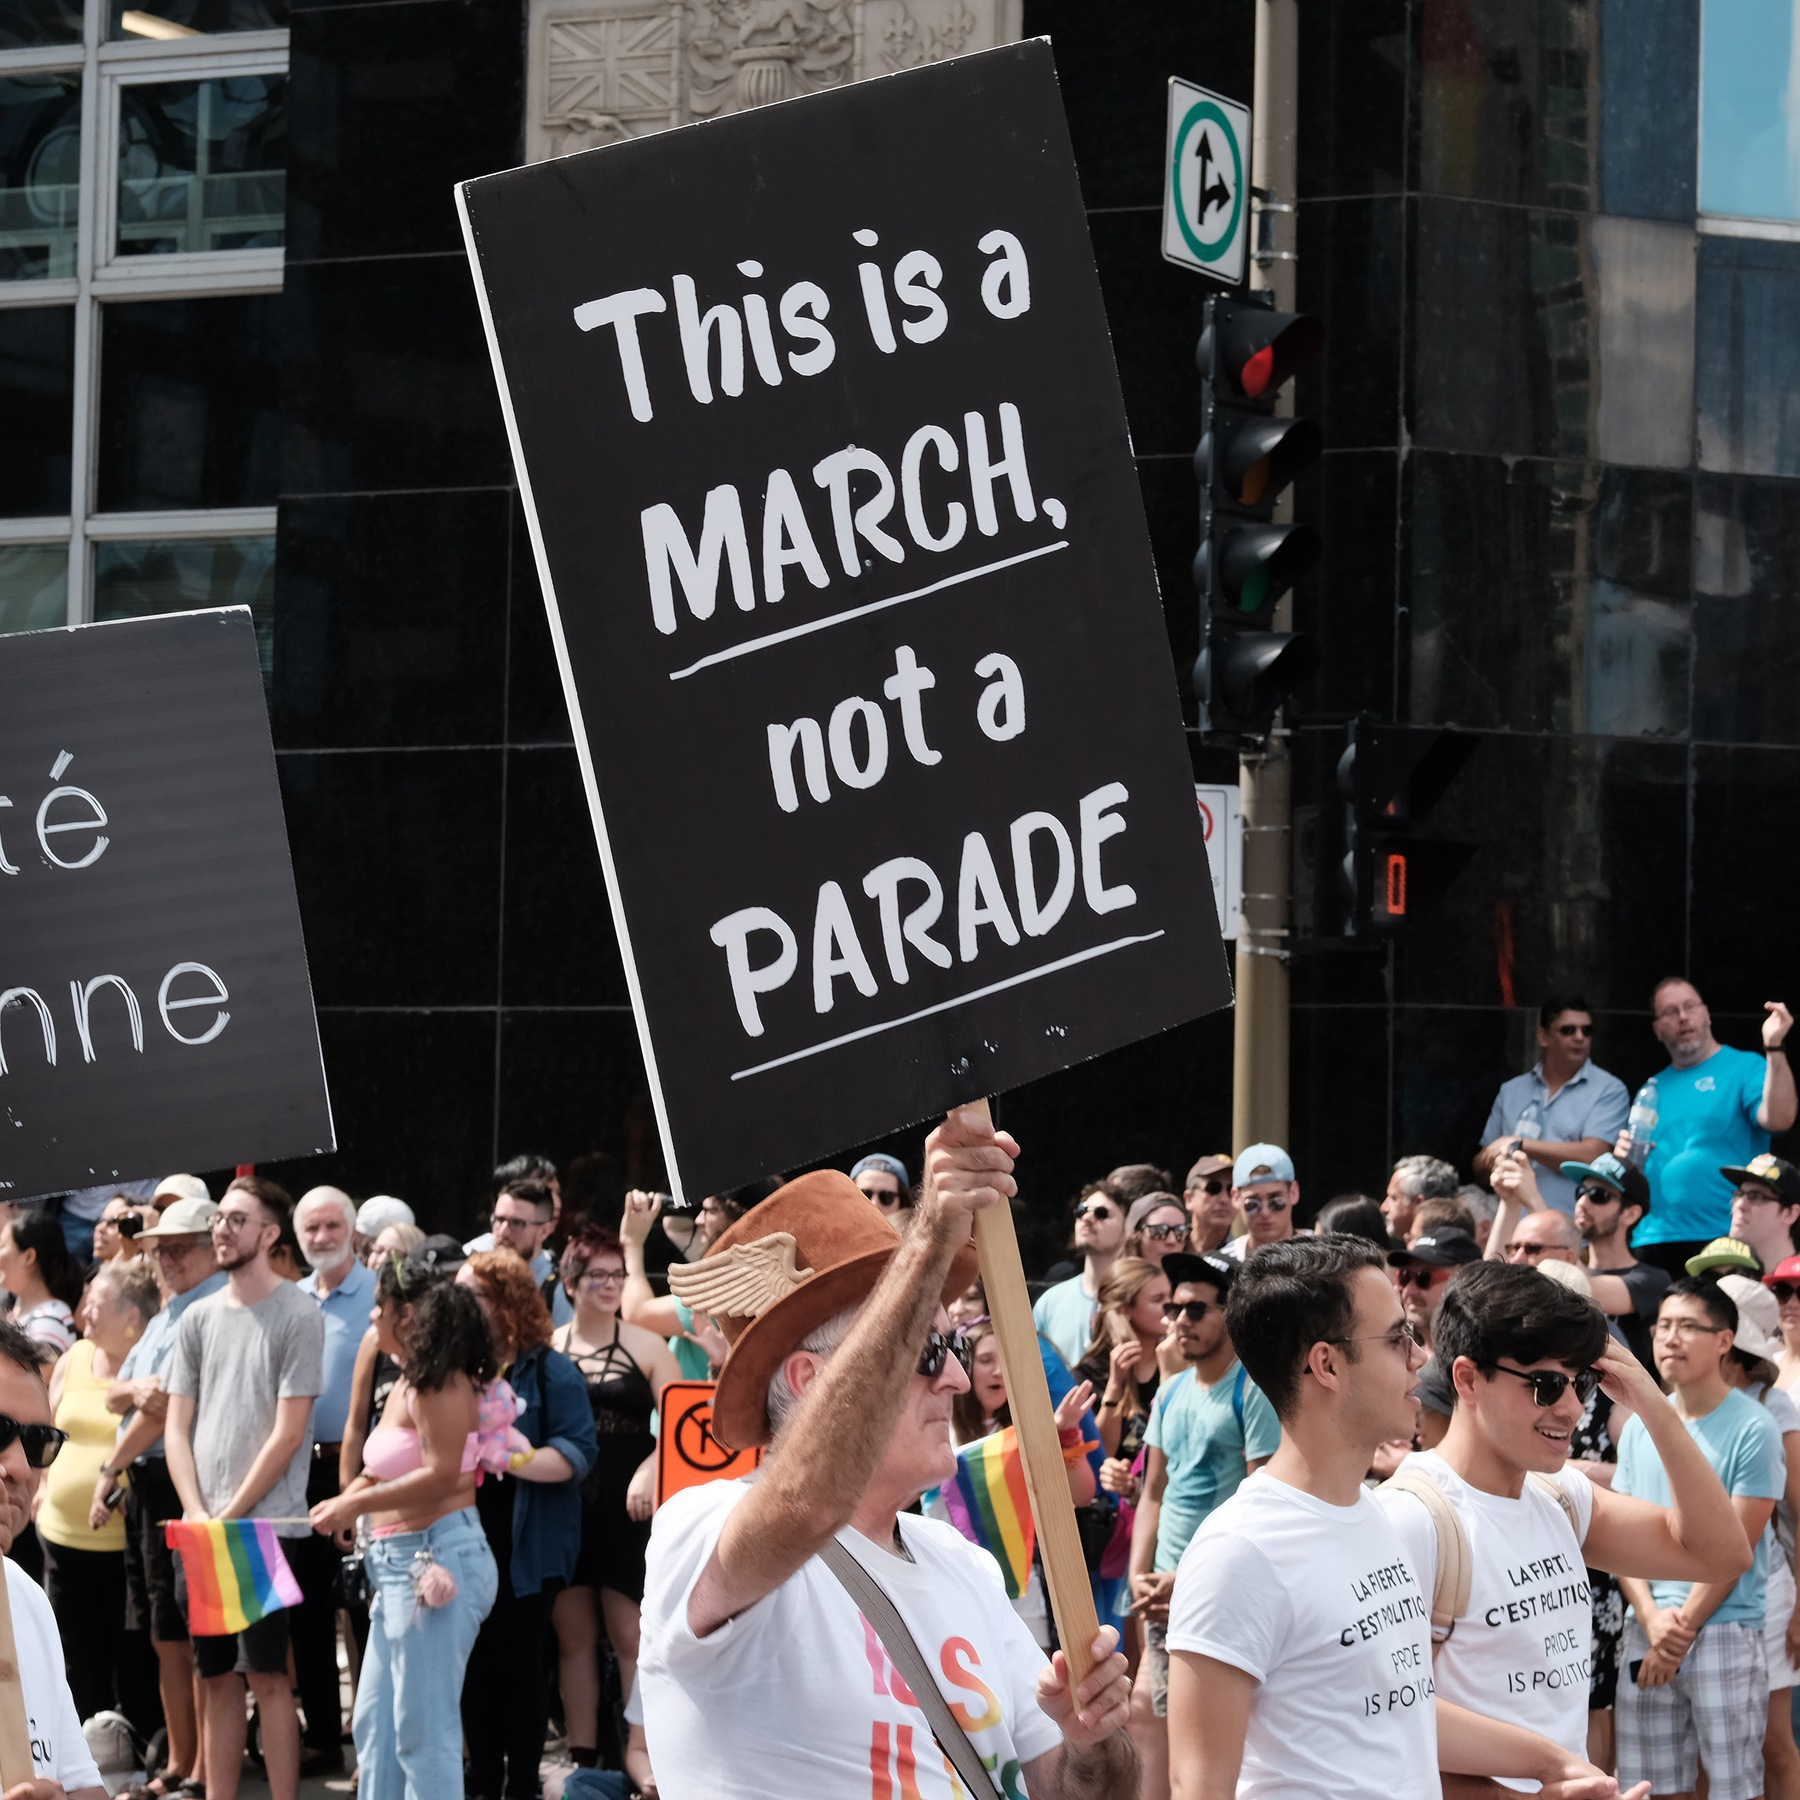 An elderly man holds a sign that says 'This is a march, not a parade'